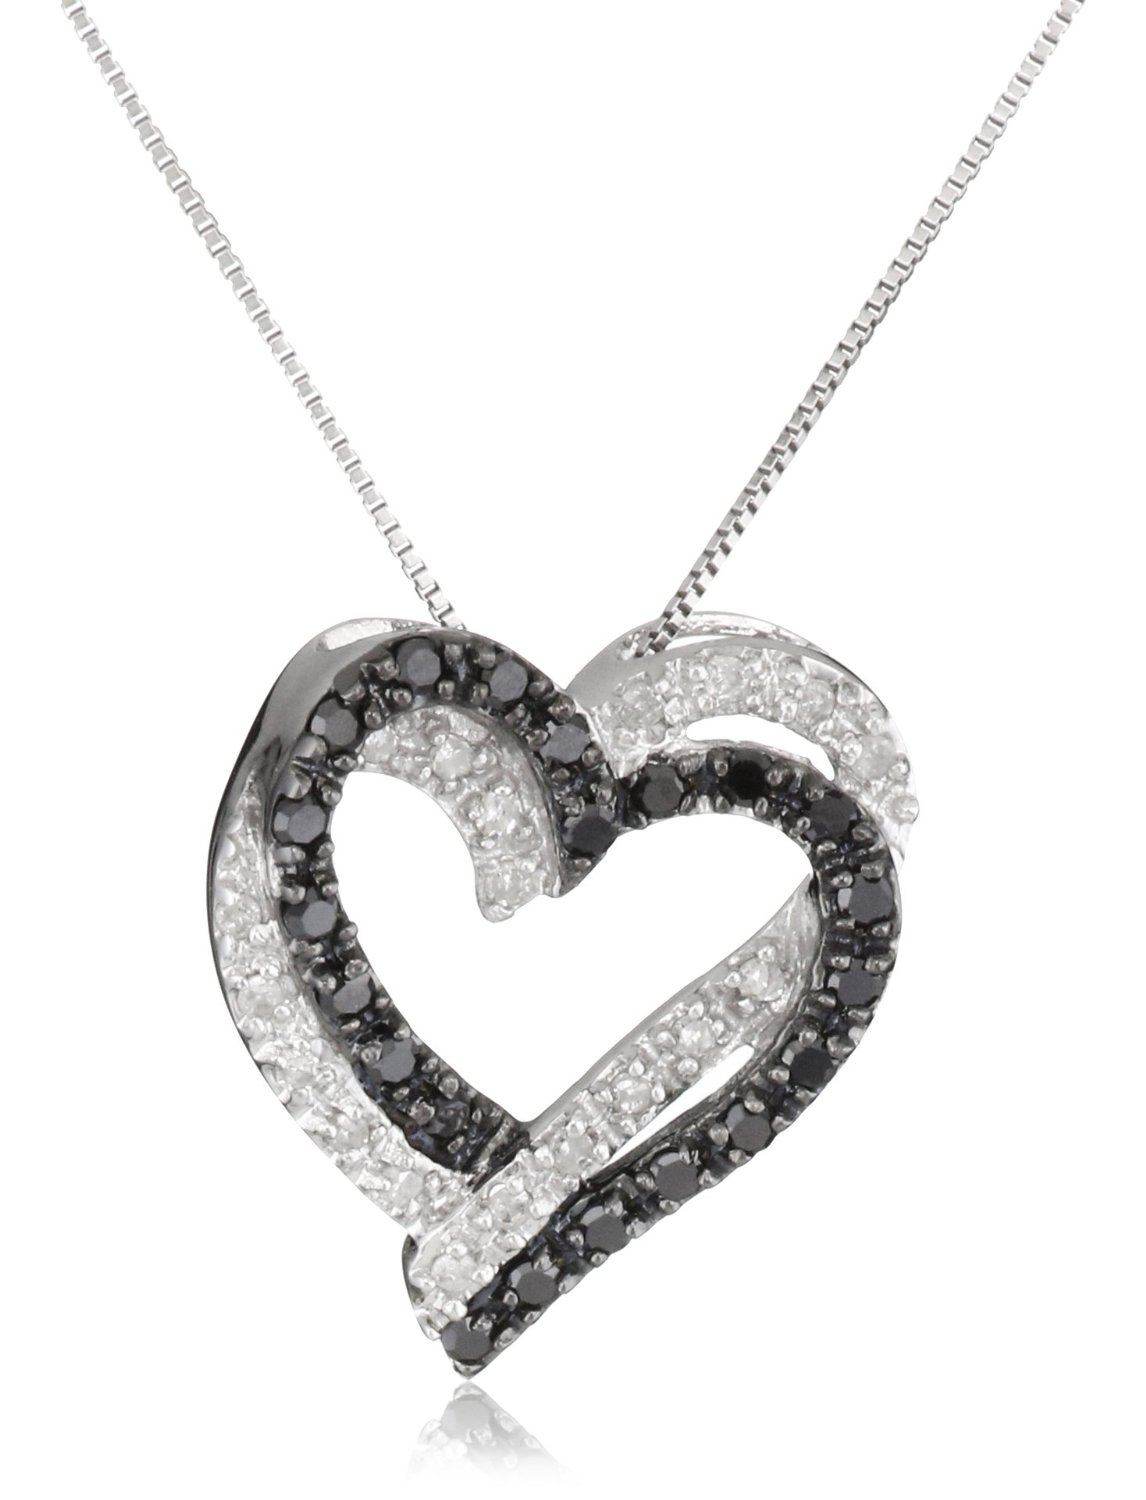 Heart pendant necklace in 14k white gold from gemone diamonds make offer aloadofball